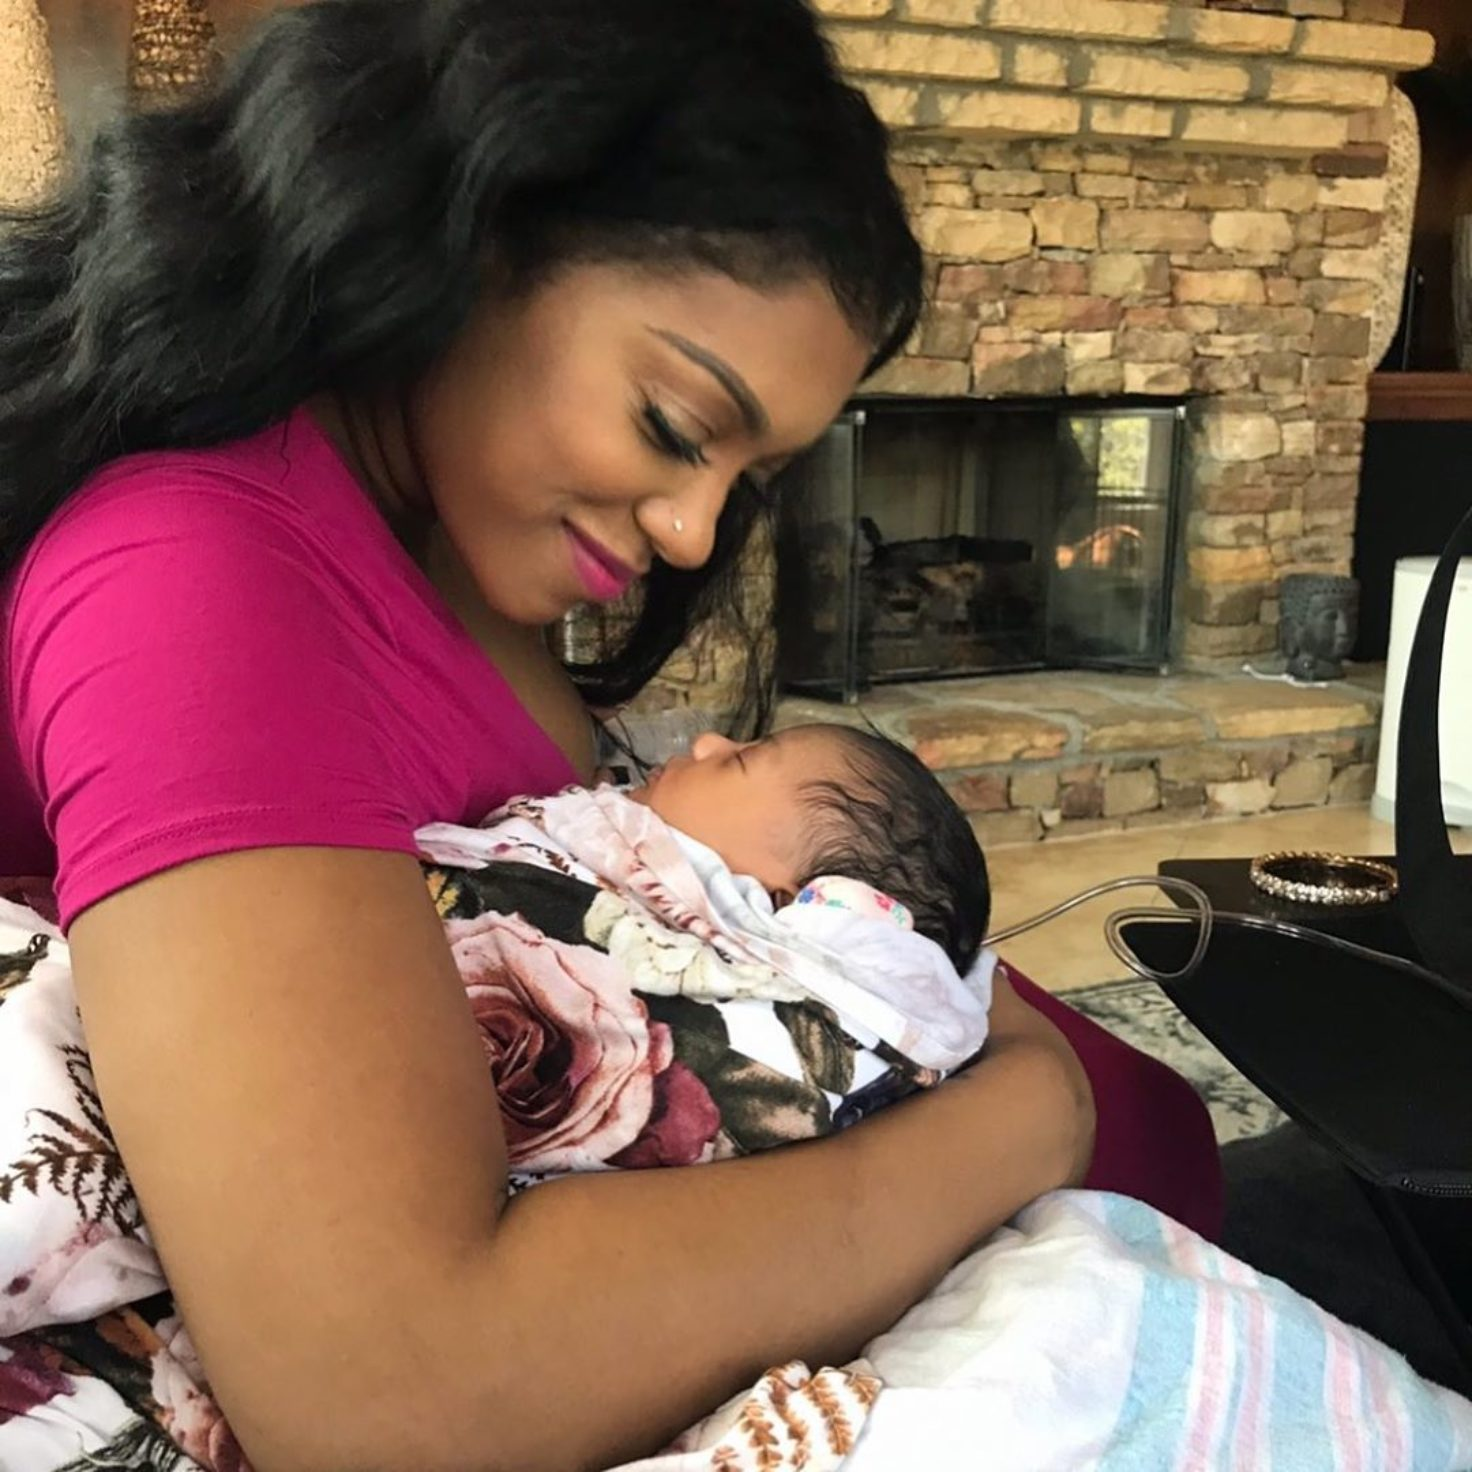 Porsha Williams' Latest Photo Featuring Baby Pilar Jhena Has Fans In Awe